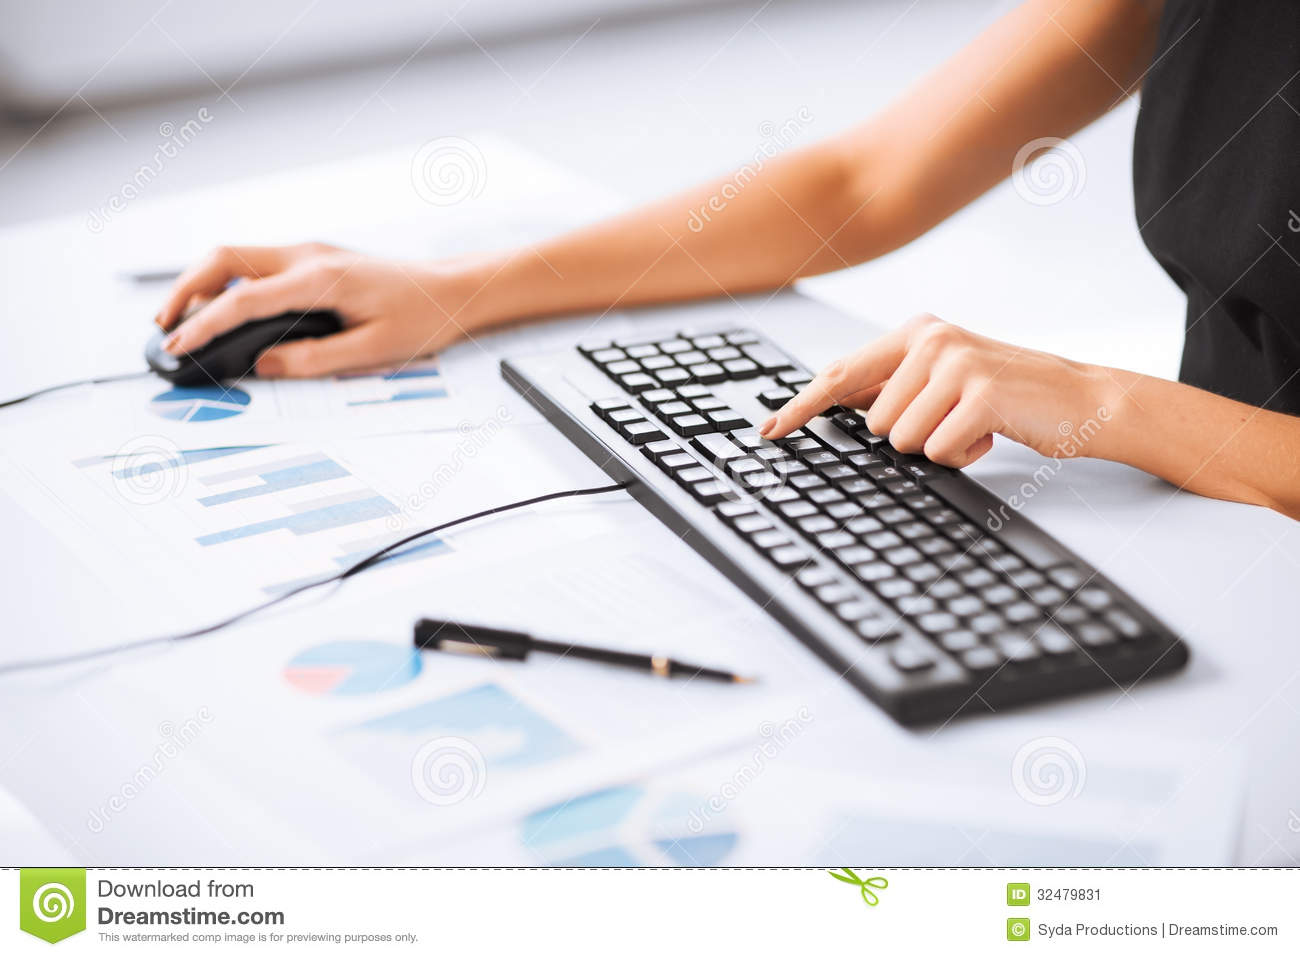 Woman Hands Typing On Keyboard Stock Image - Image of ...